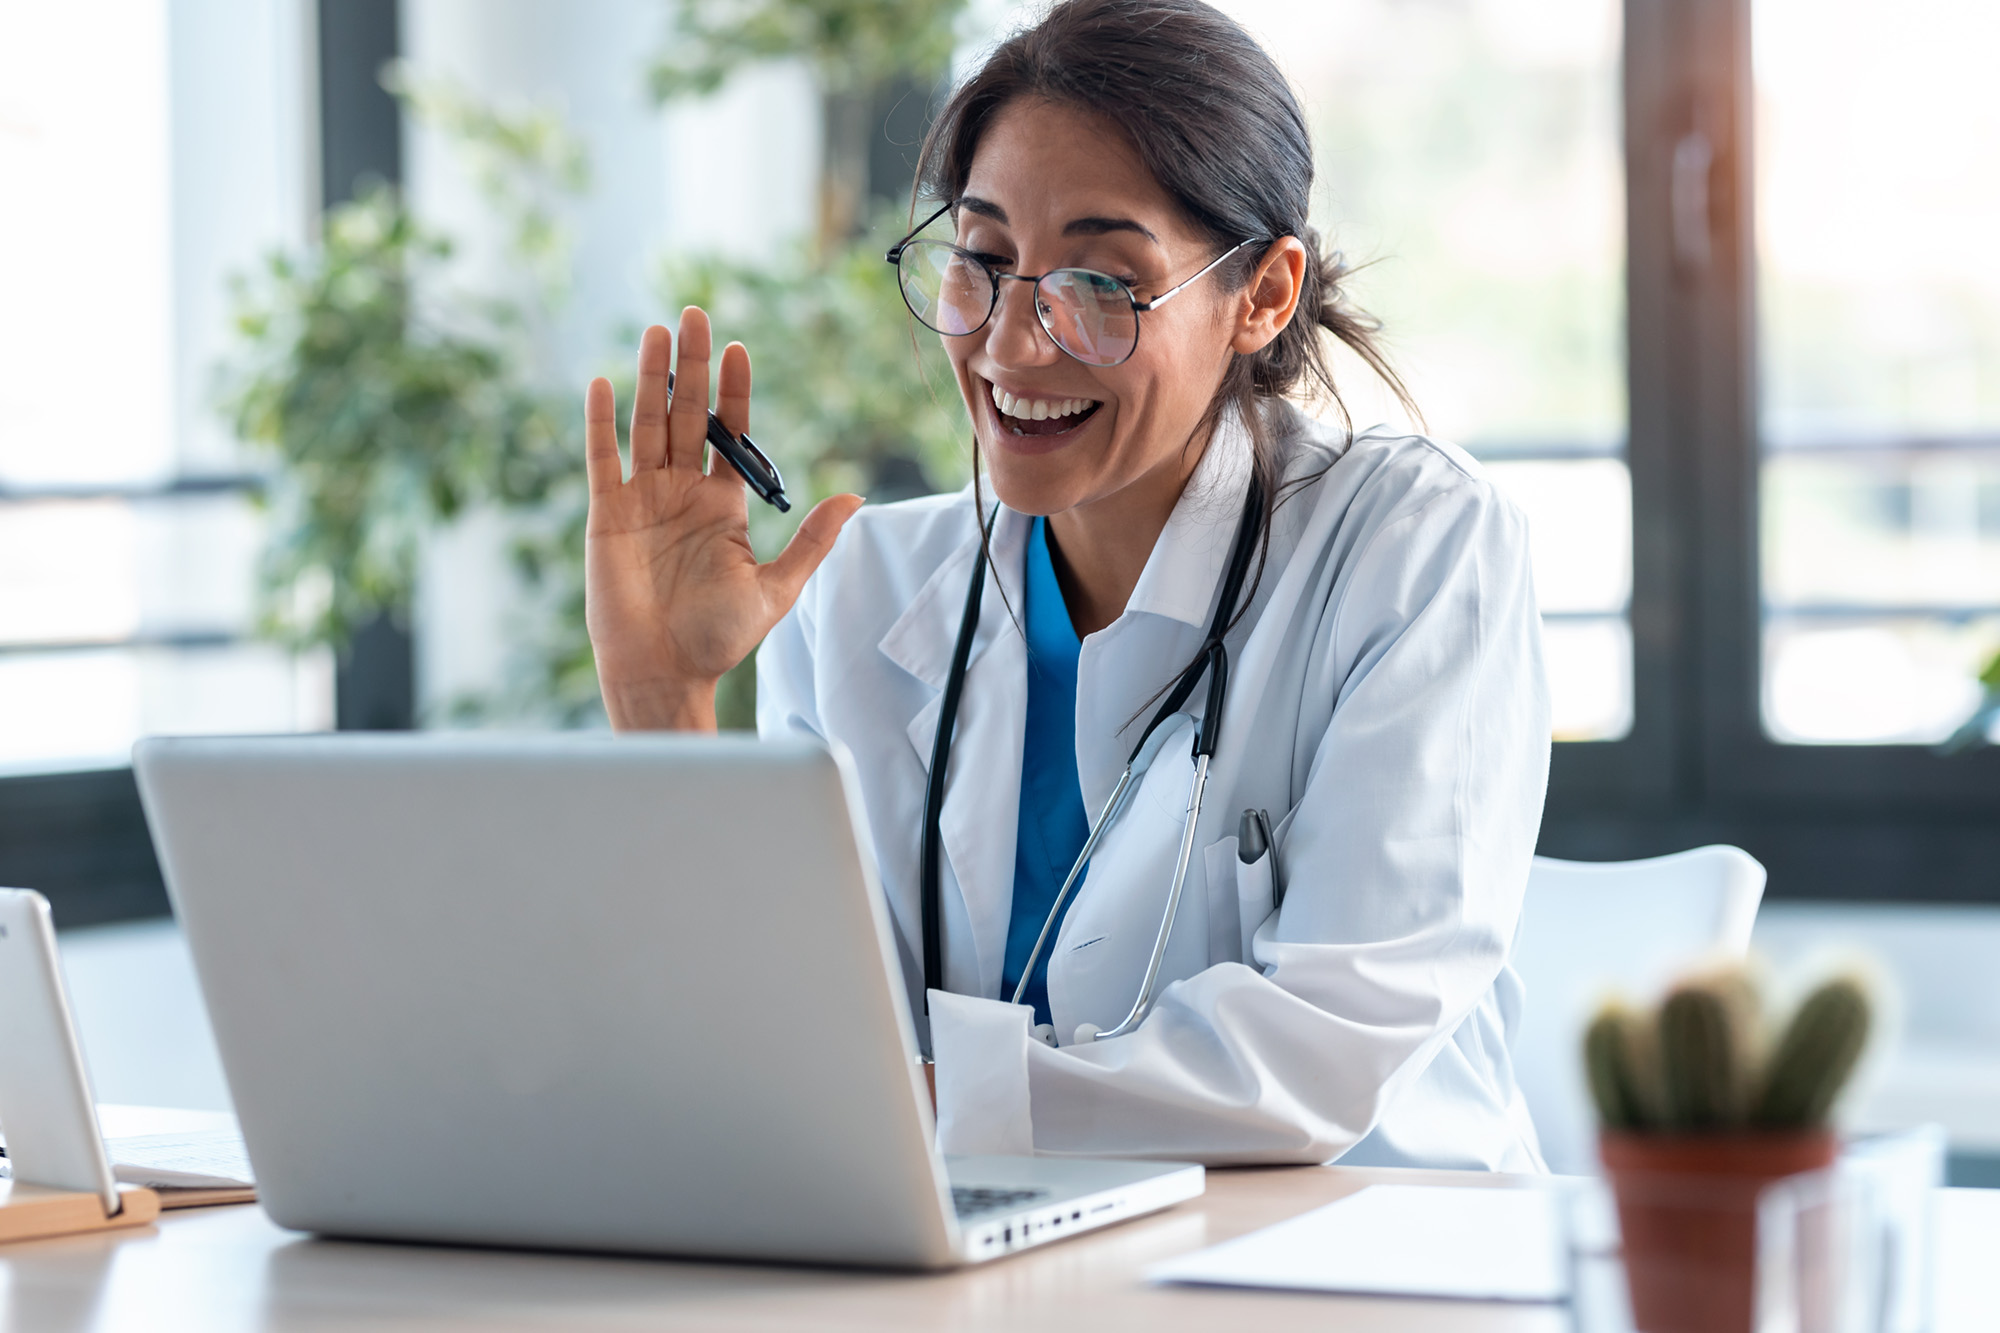 Do You Need Telehealth in Your Practice?